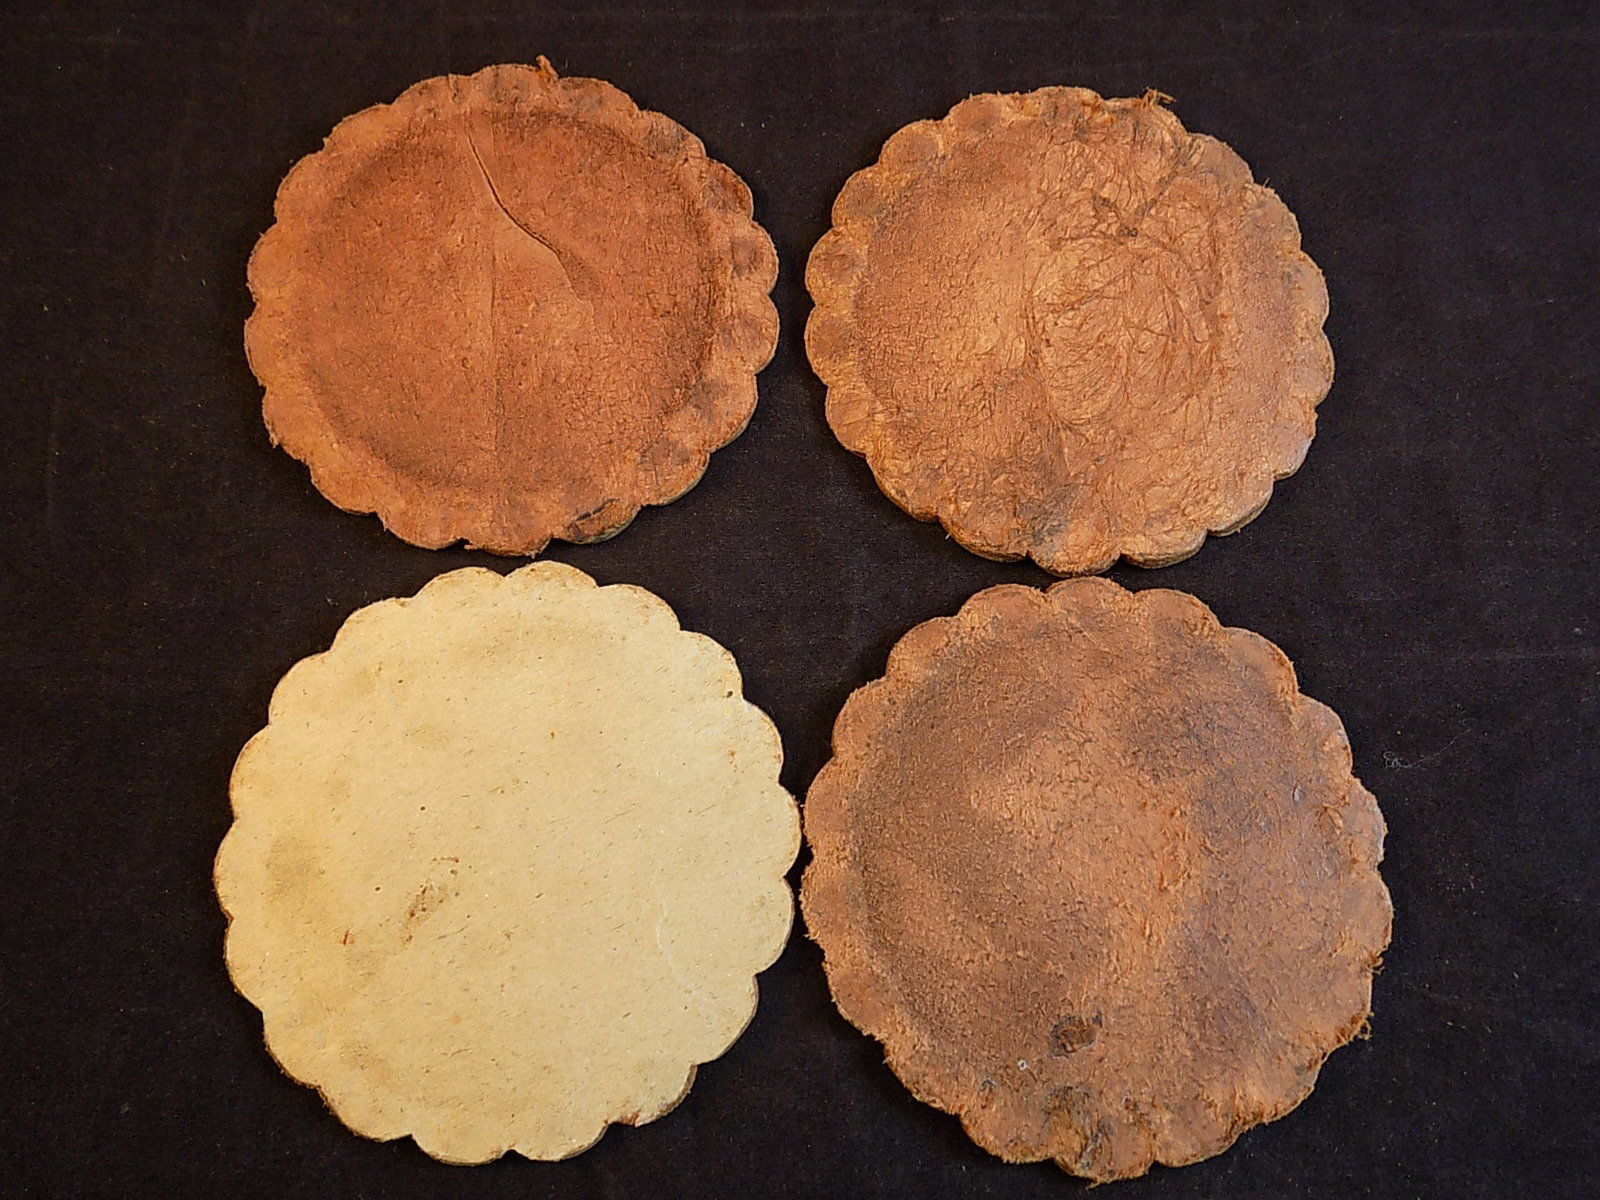 ORNATE HANDMADE LEATHER BEVERAGE COASTER SET 4 PERUVIAN Decorative Leather Disks